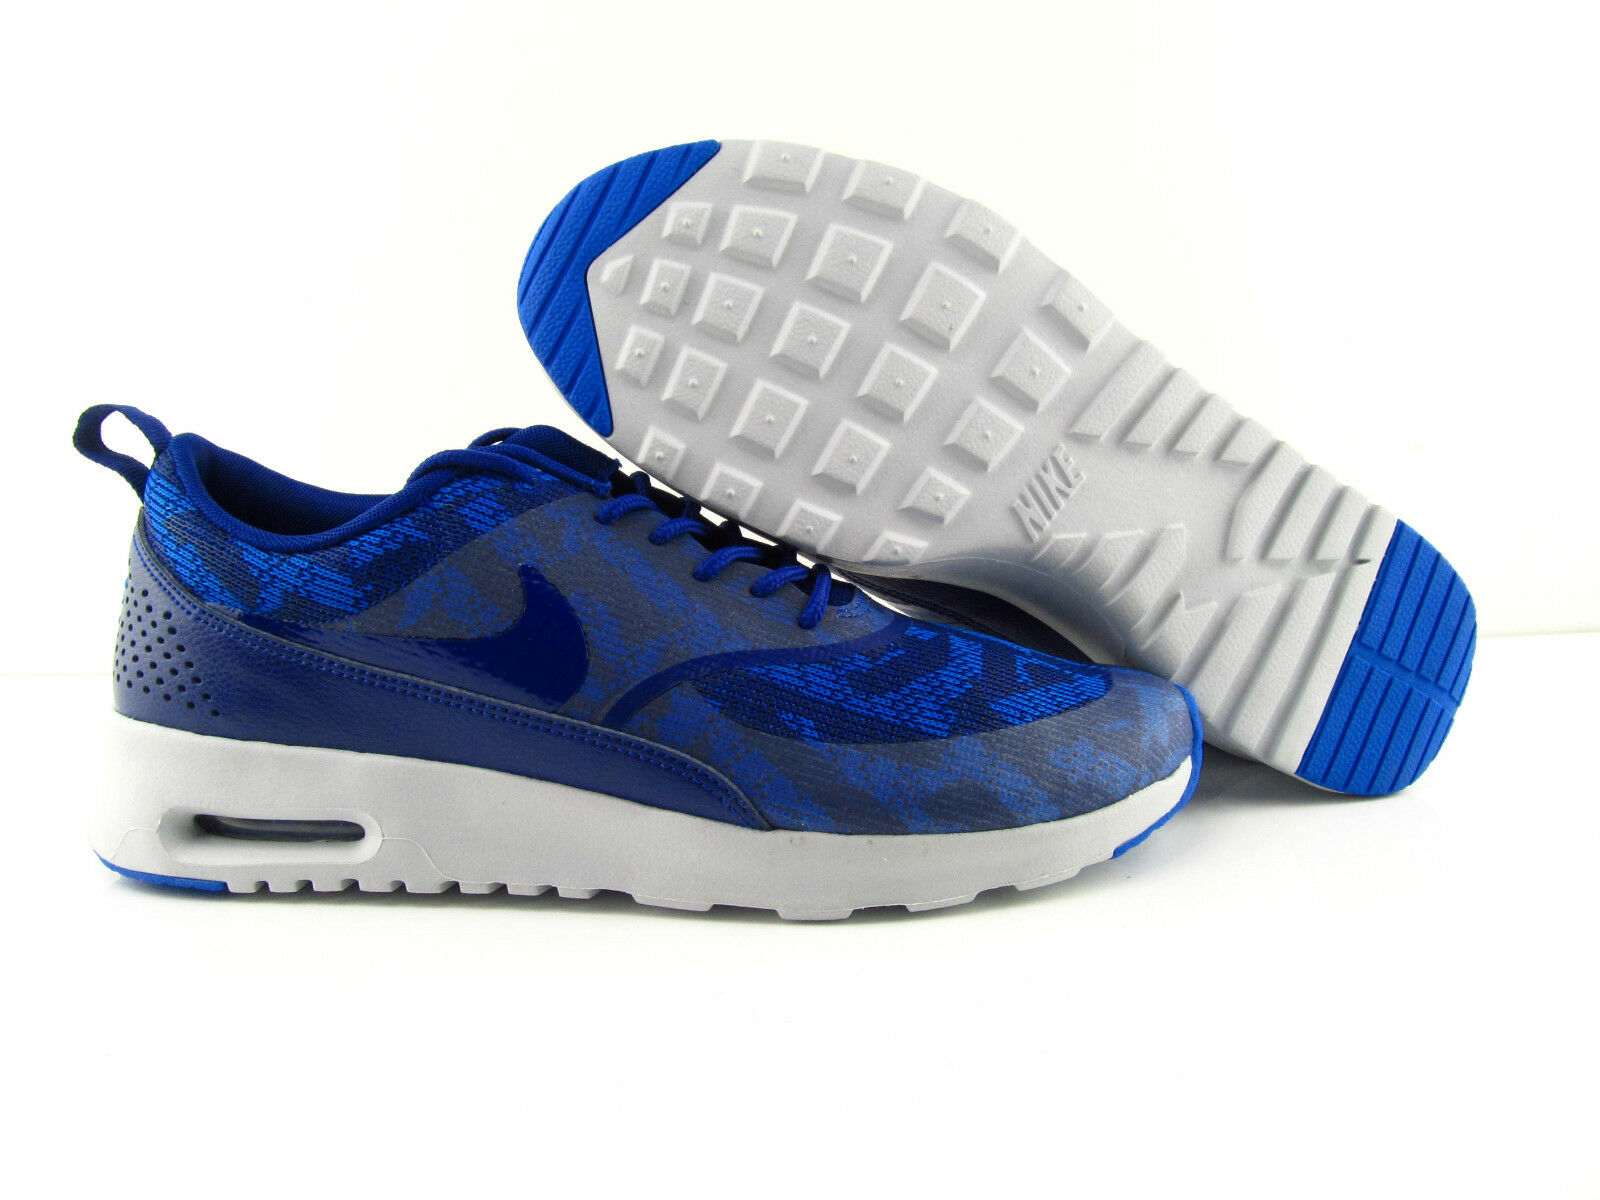 Nike Air Max Thea KJCRD Deep Royal Bleu Sneakers Eur 42